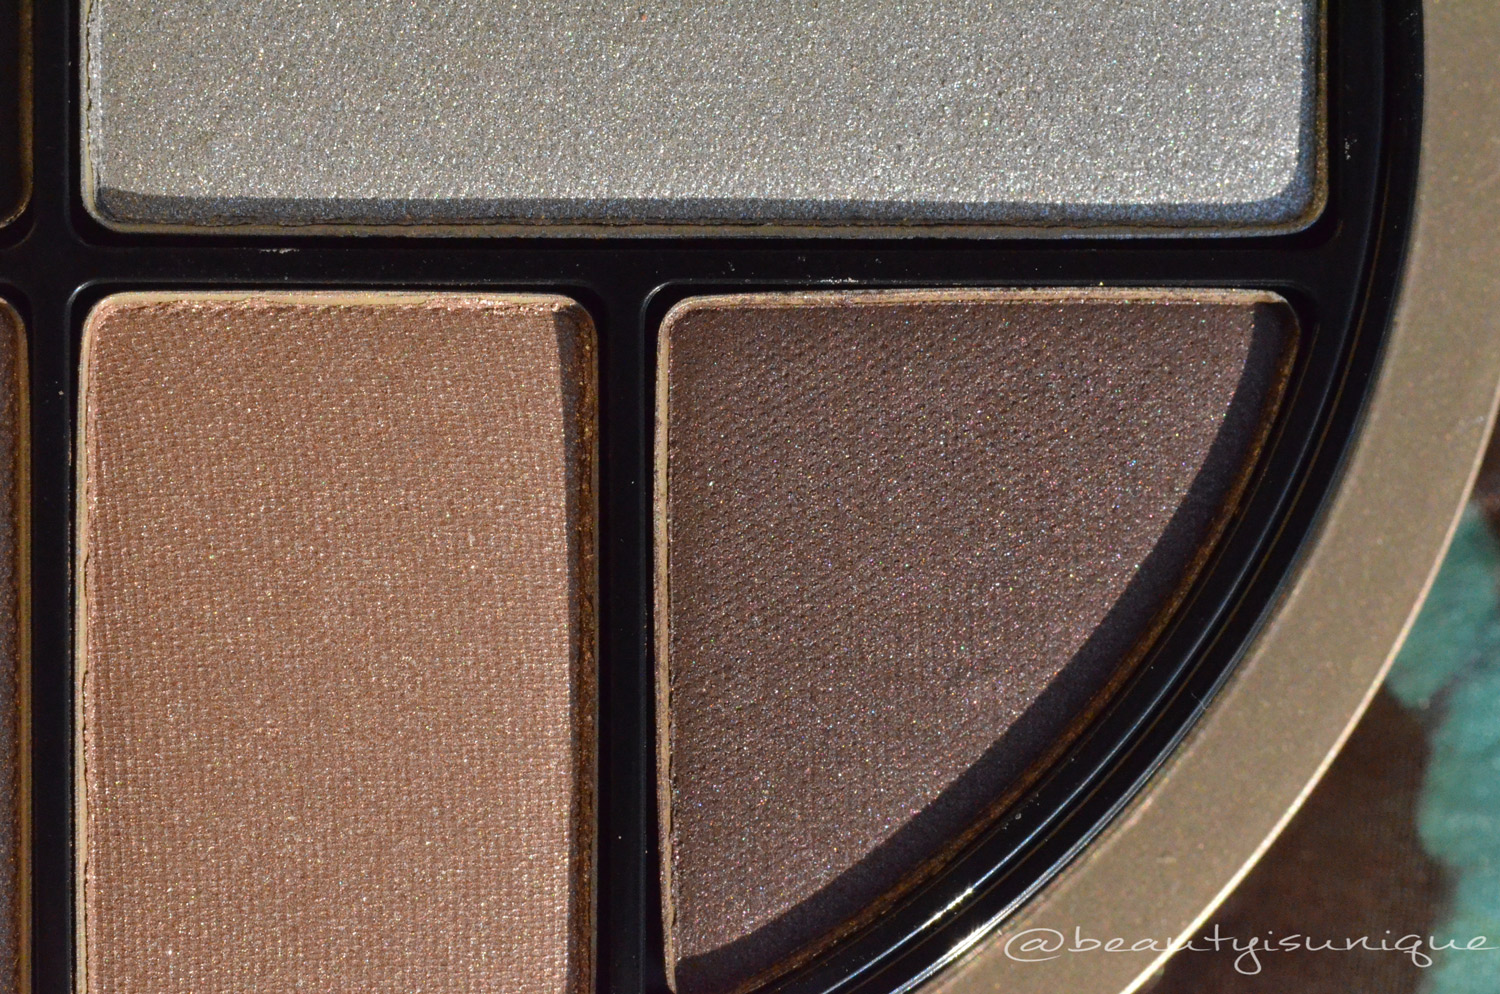 armani luxe is more palette